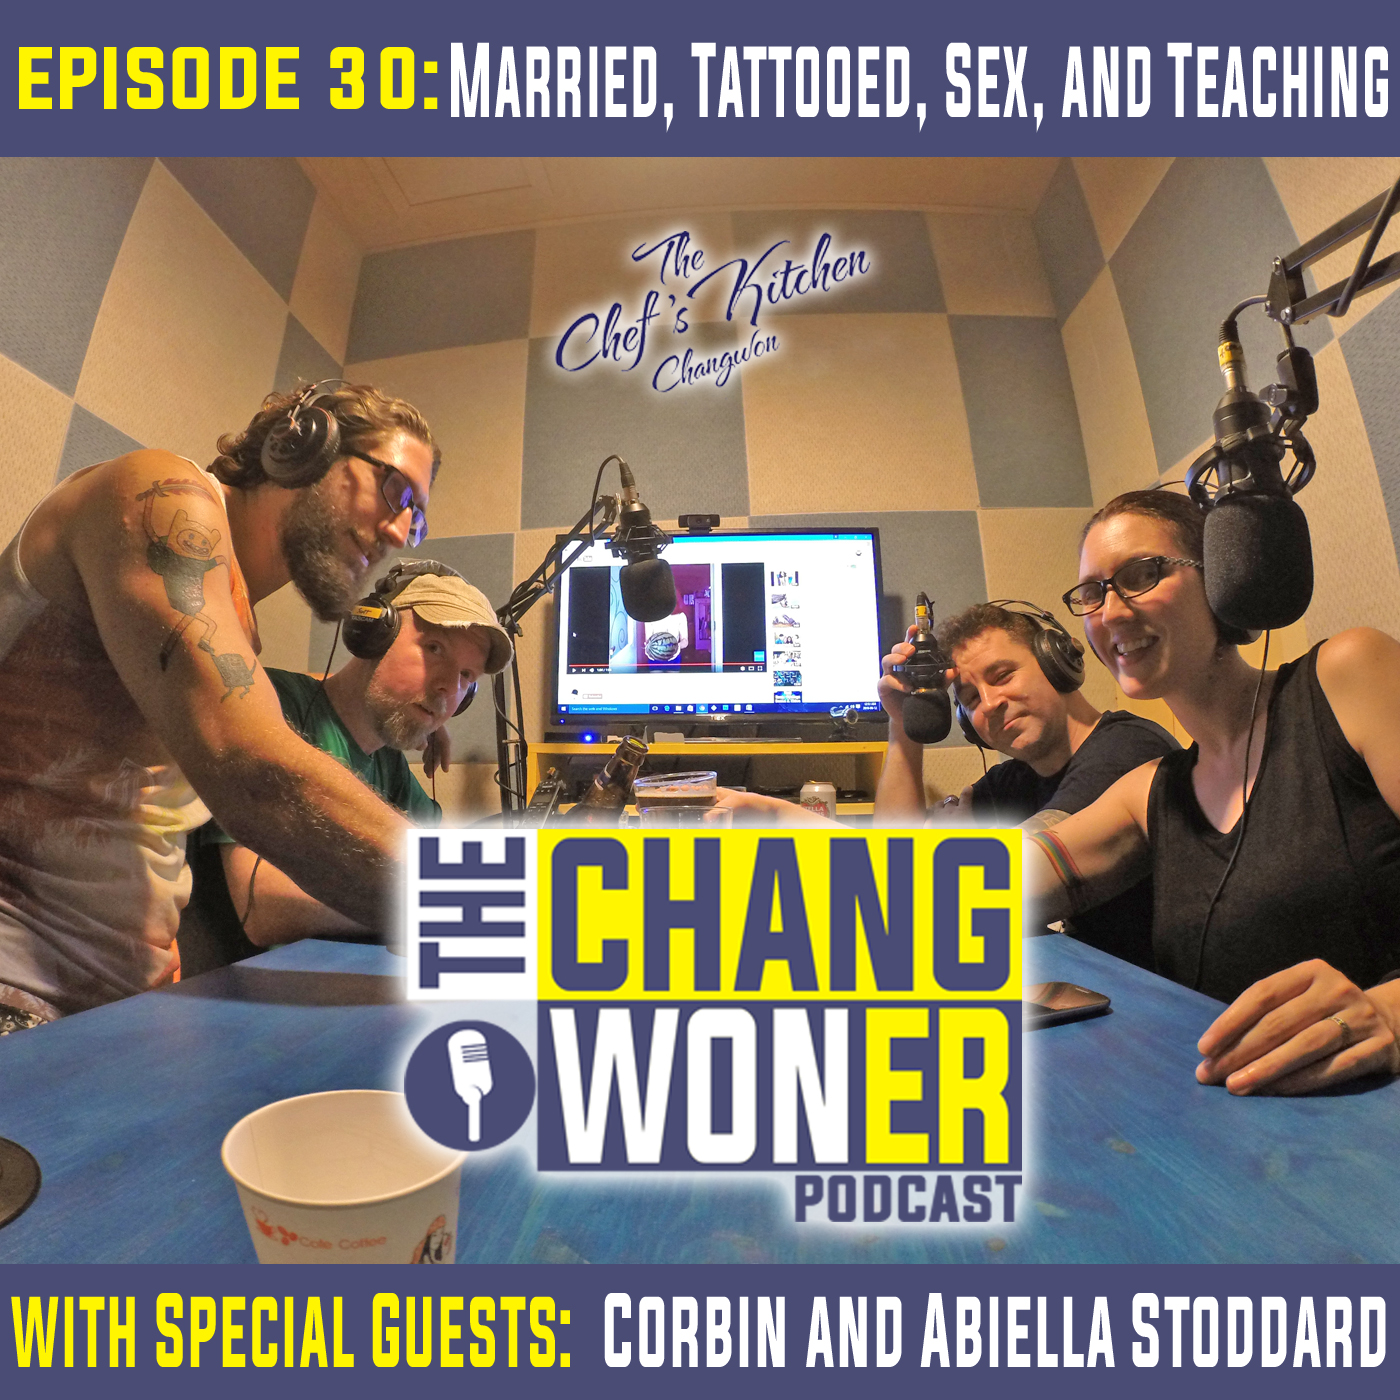 Artwork for Tattoos, Sex, and Teaching in South Korea. -guests Corbin and Abiella Stoddard (Ep 30)